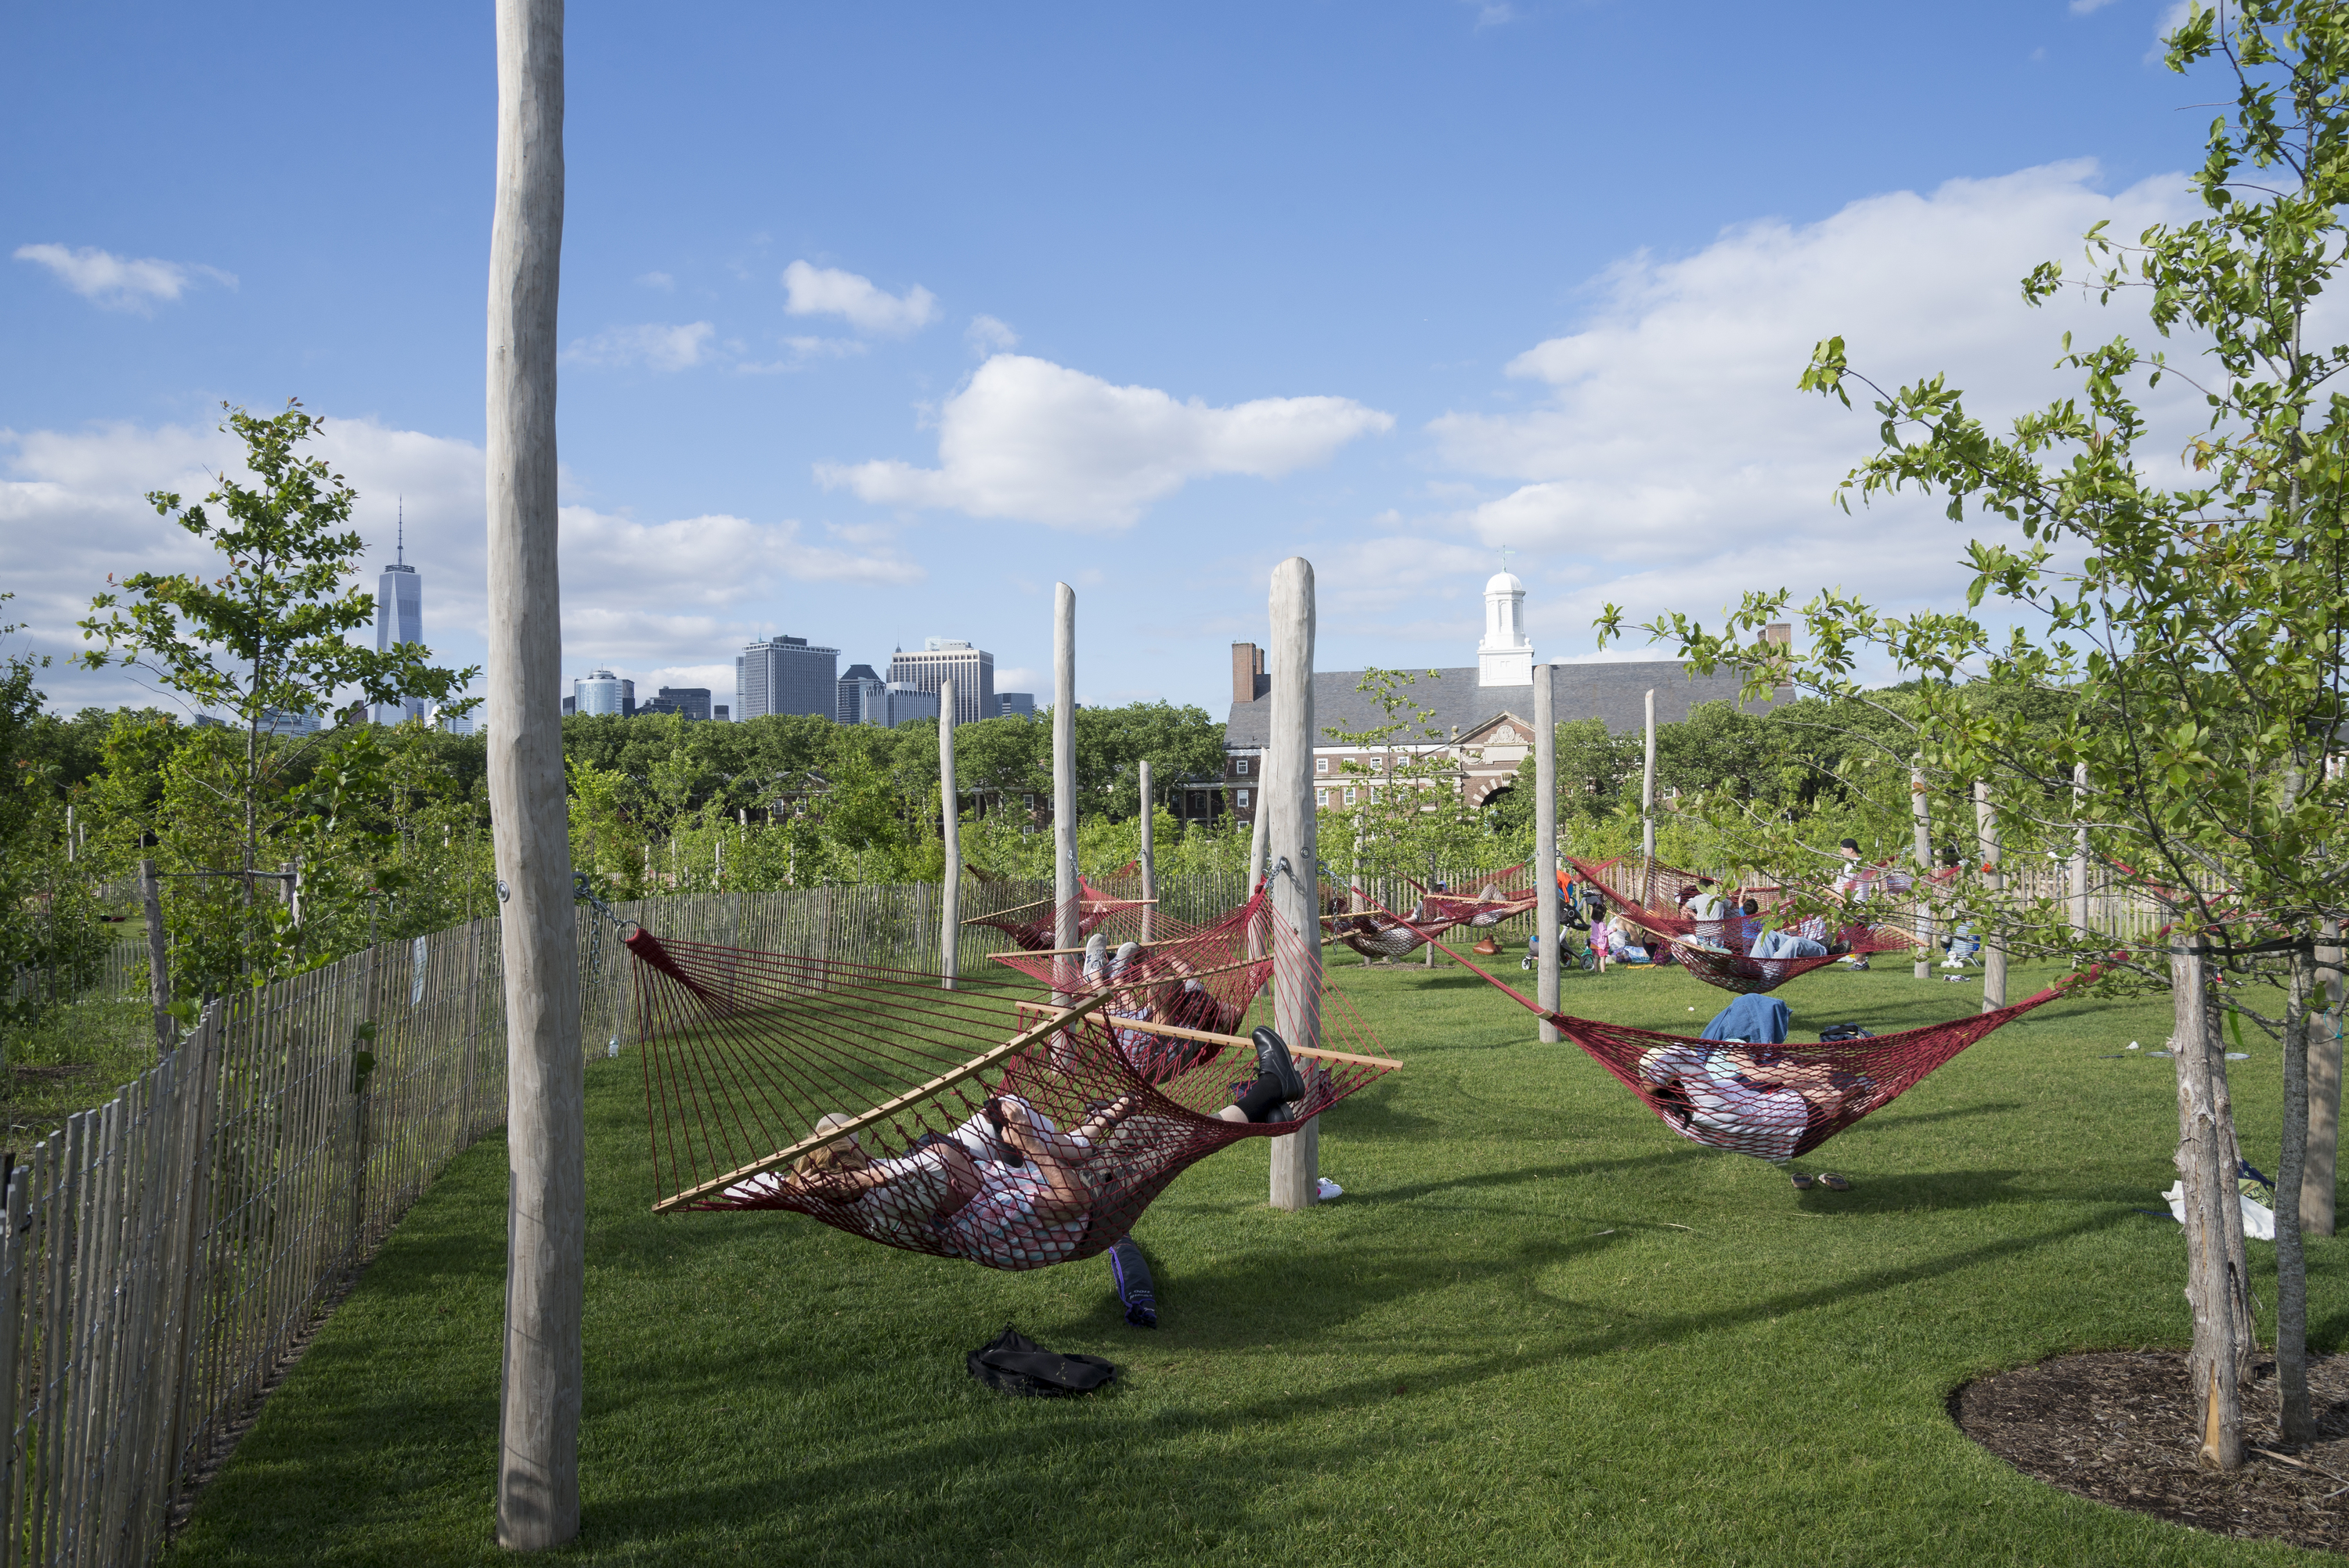 15 Best Things To Do On Governors Island For Families In Nyc